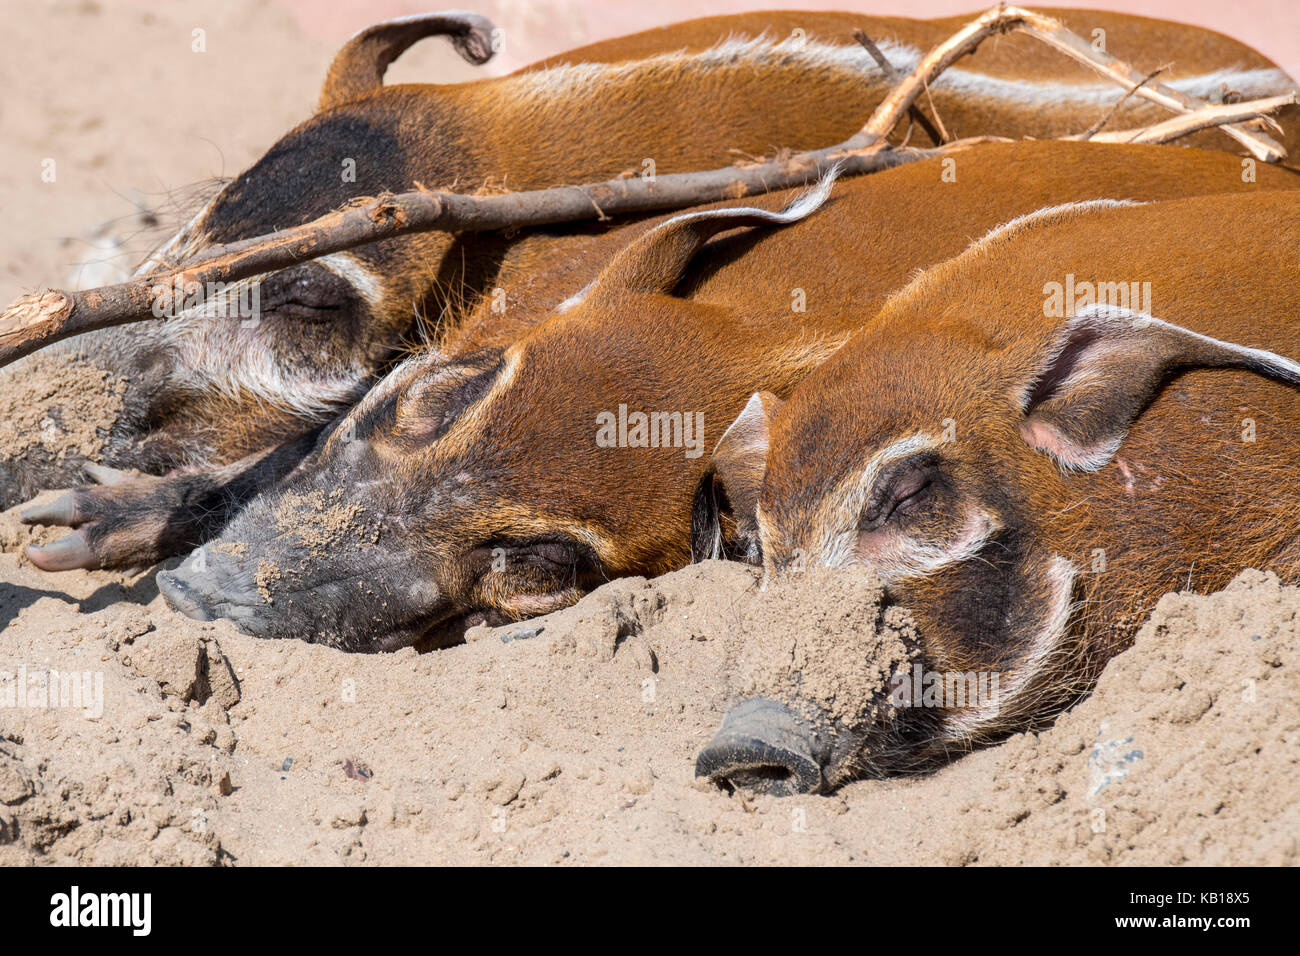 Close up of three red river hogs / bush pigs (Potamochoerus porcus) sleeping, native to Africa - Stock Image